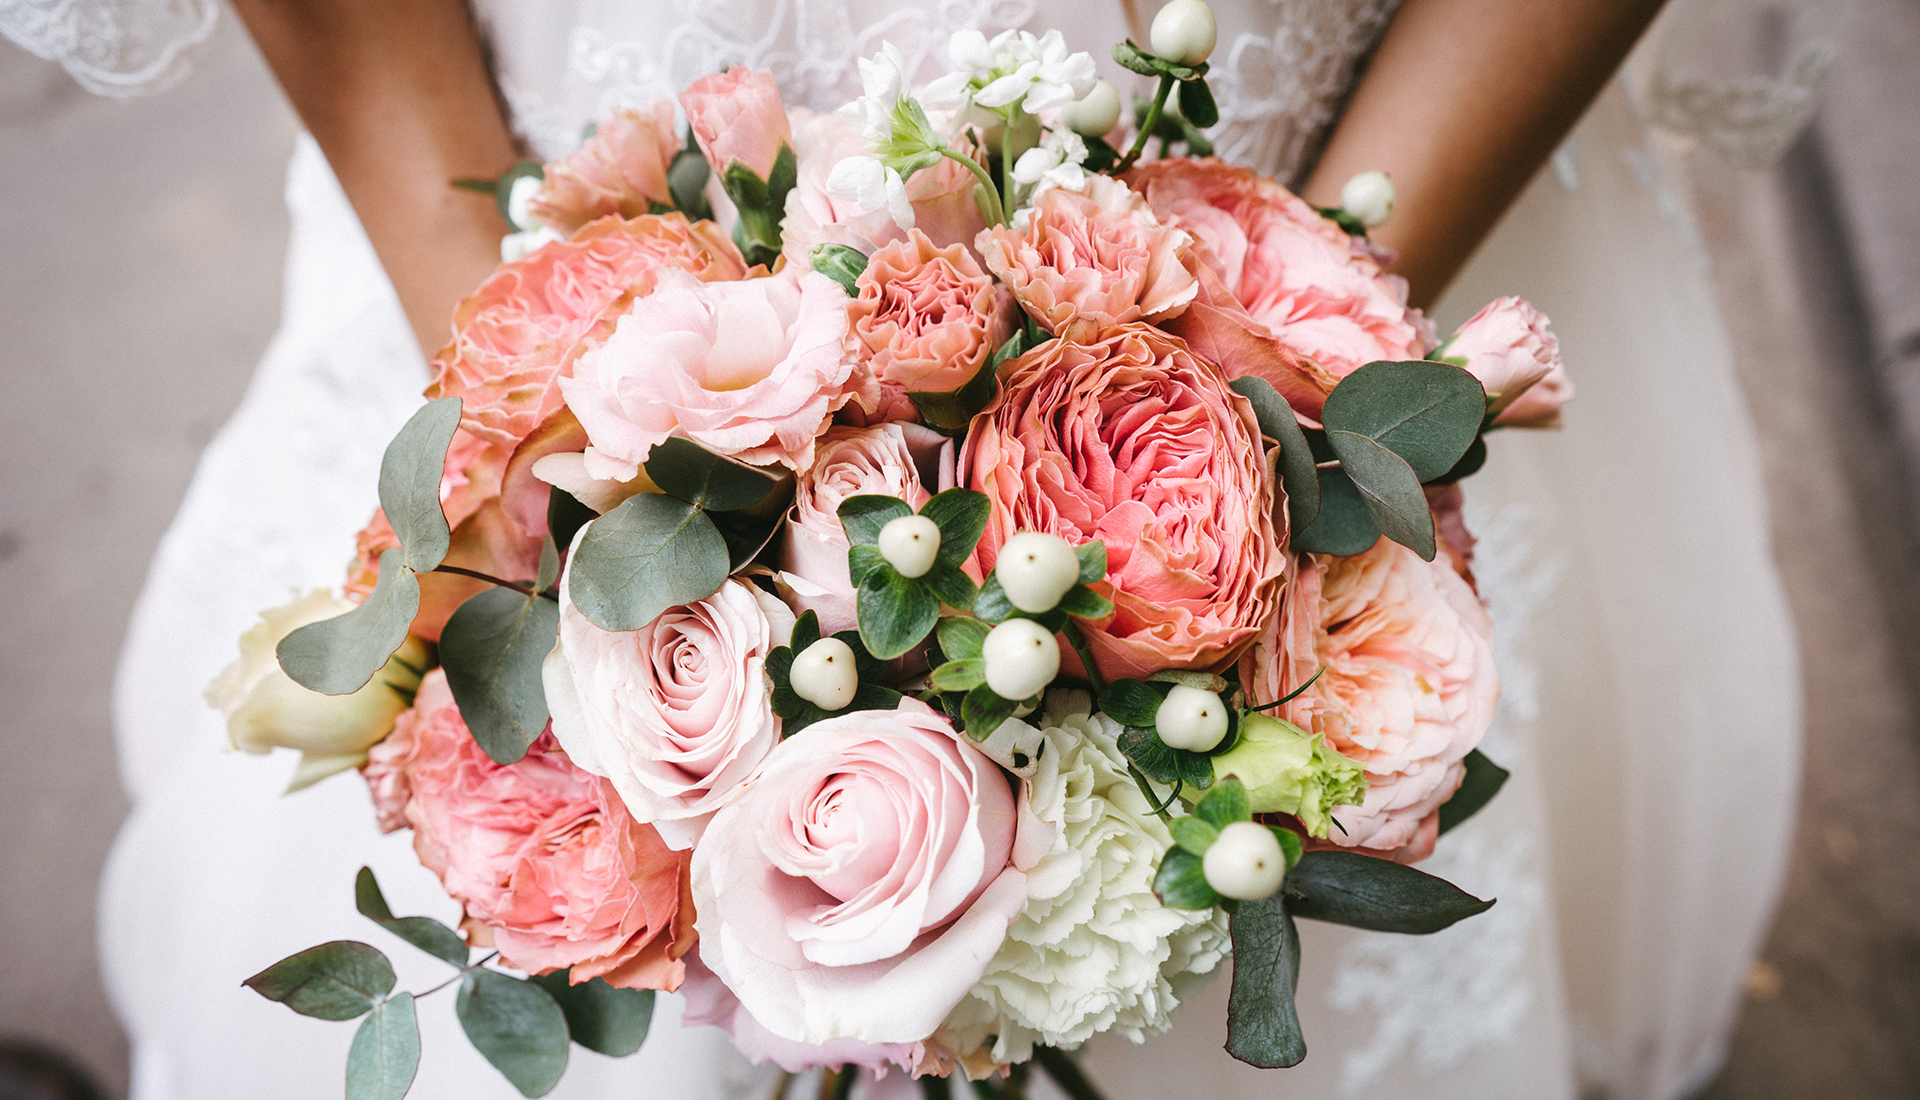 Stunning bridal bouquet. Wedding ceremony. Mix of peony, succulents, orchids and roses. Modern bridal accessories. Wedding flowers